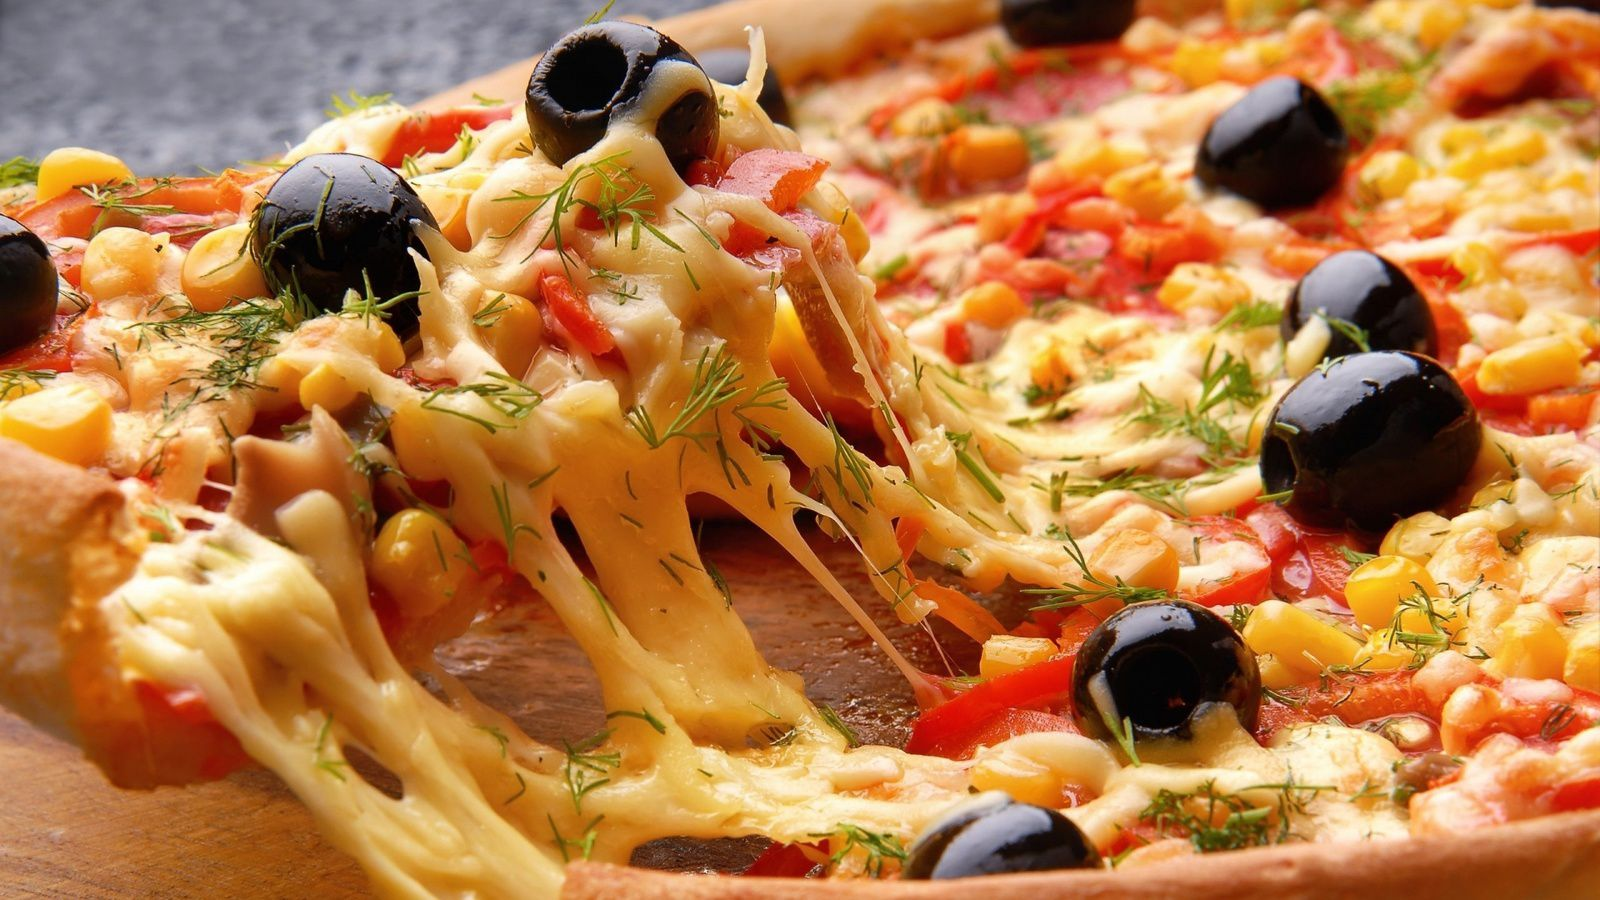 Bon appétit - Pizza - Olives - Nourriture - Wallpaper - Free